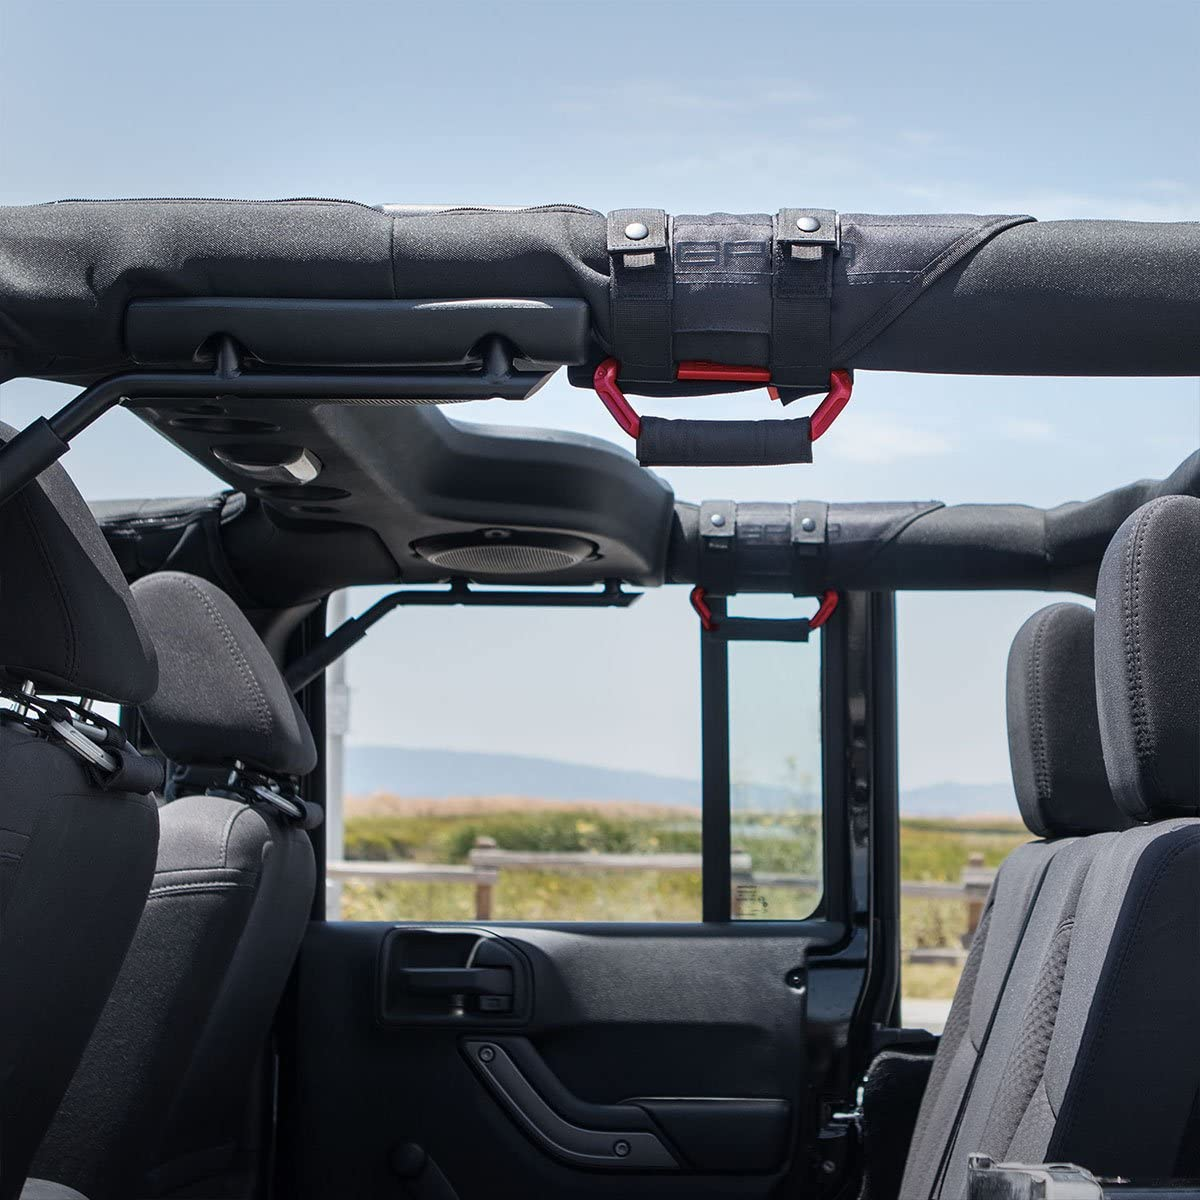 GPCA Products GP-Grip LITE for Jeep JK JKU JL Sports//Sahara//Freedom//Rubicon X Unlimited X 2DR// 4DR 2007-2019 with 3 Padded roll bar Jet Black - Single GPCA Wrangler Metal Grab Handle